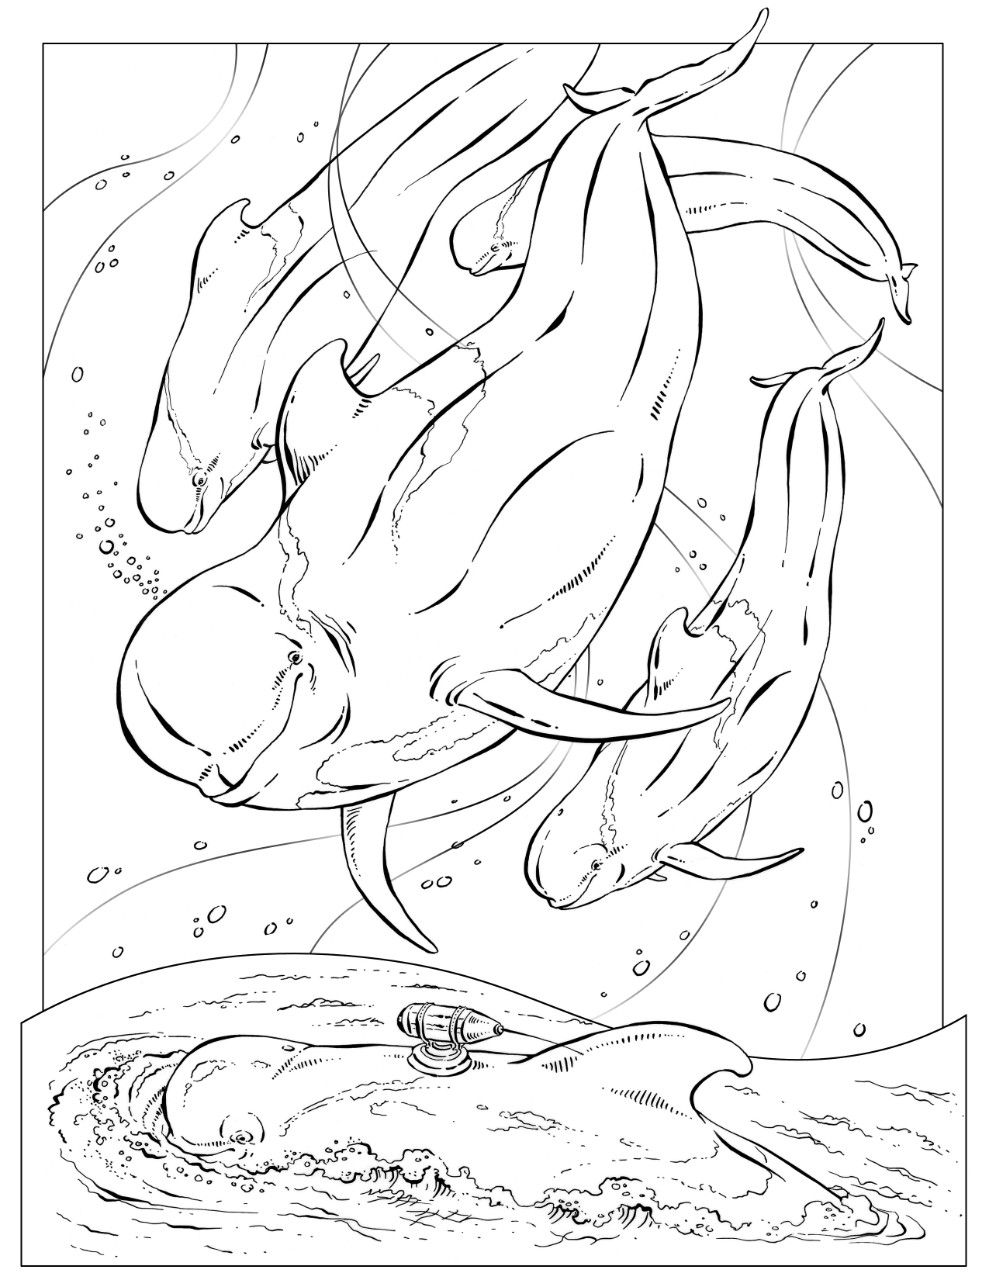 pilot whale coloring thumb - Science Coloring Book